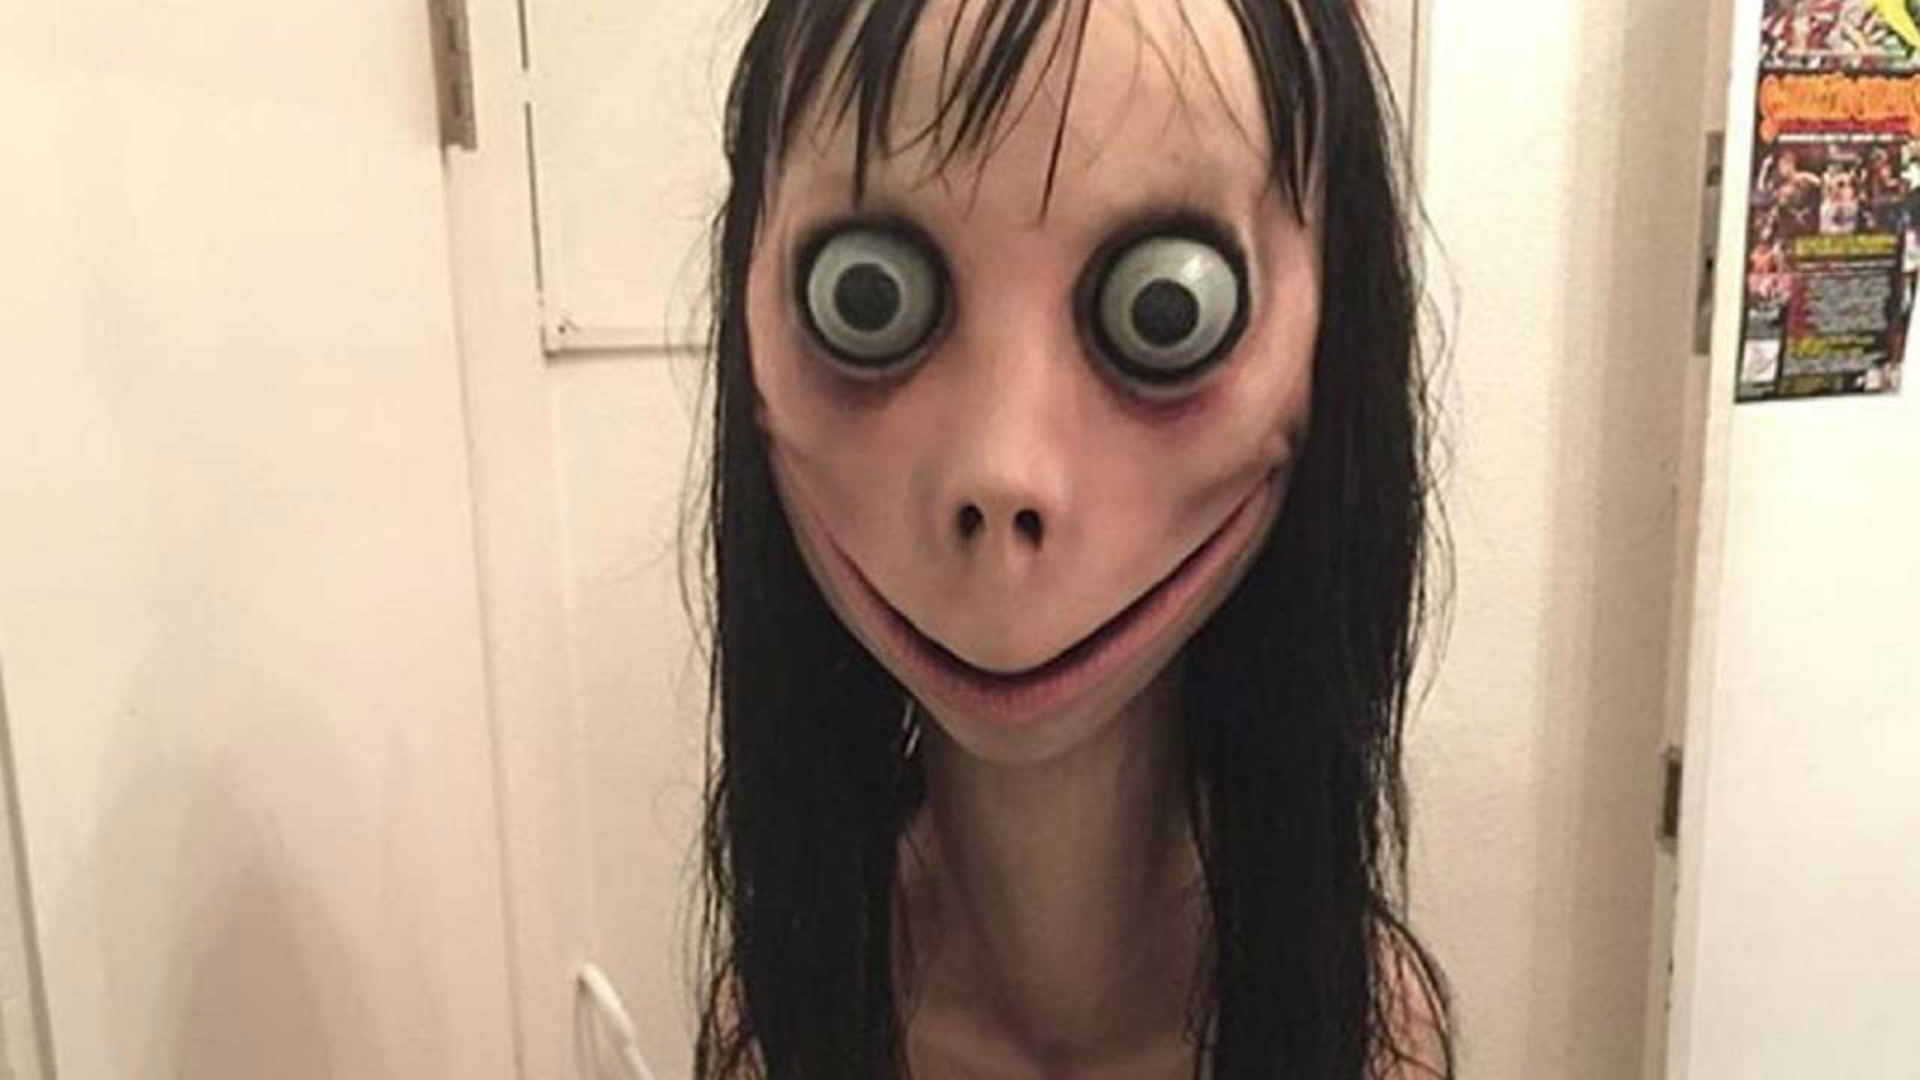 Orion Pictures Is Set to Develop a Film Based on the Momo Hoax